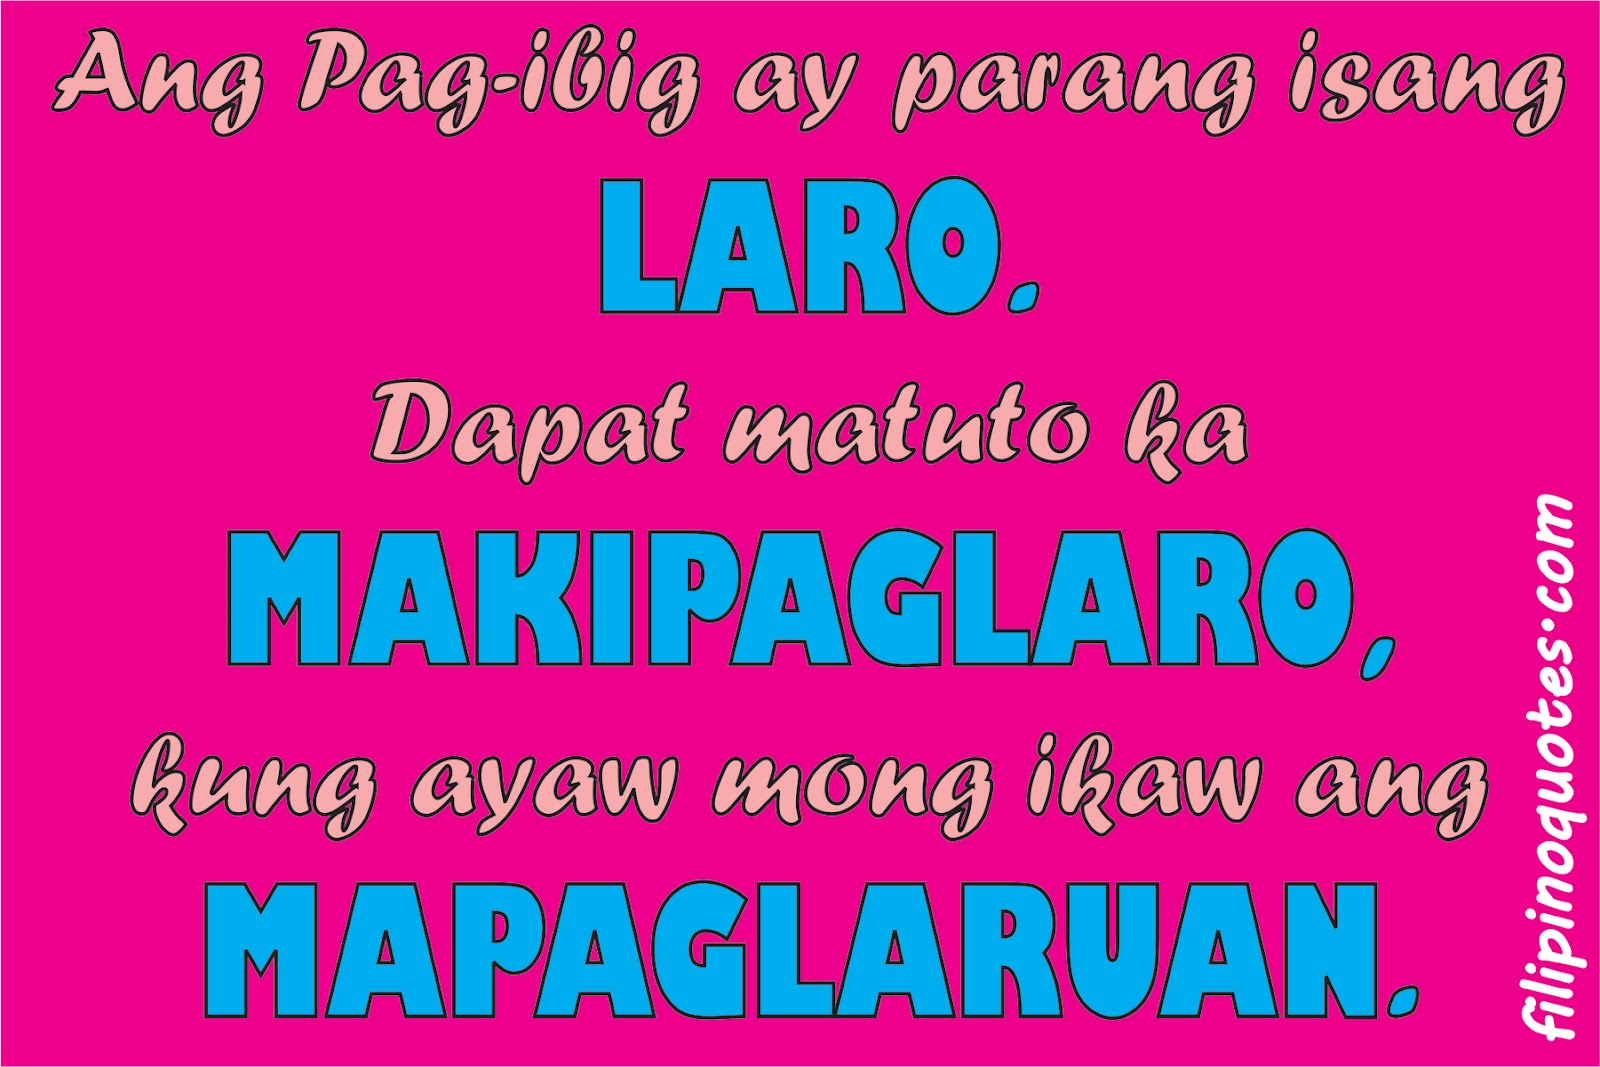 Sad Love Quotes For My Boyfriend Tagalog : Tagalog Love Quotes (May 2012) - Tagalog Love Quotes